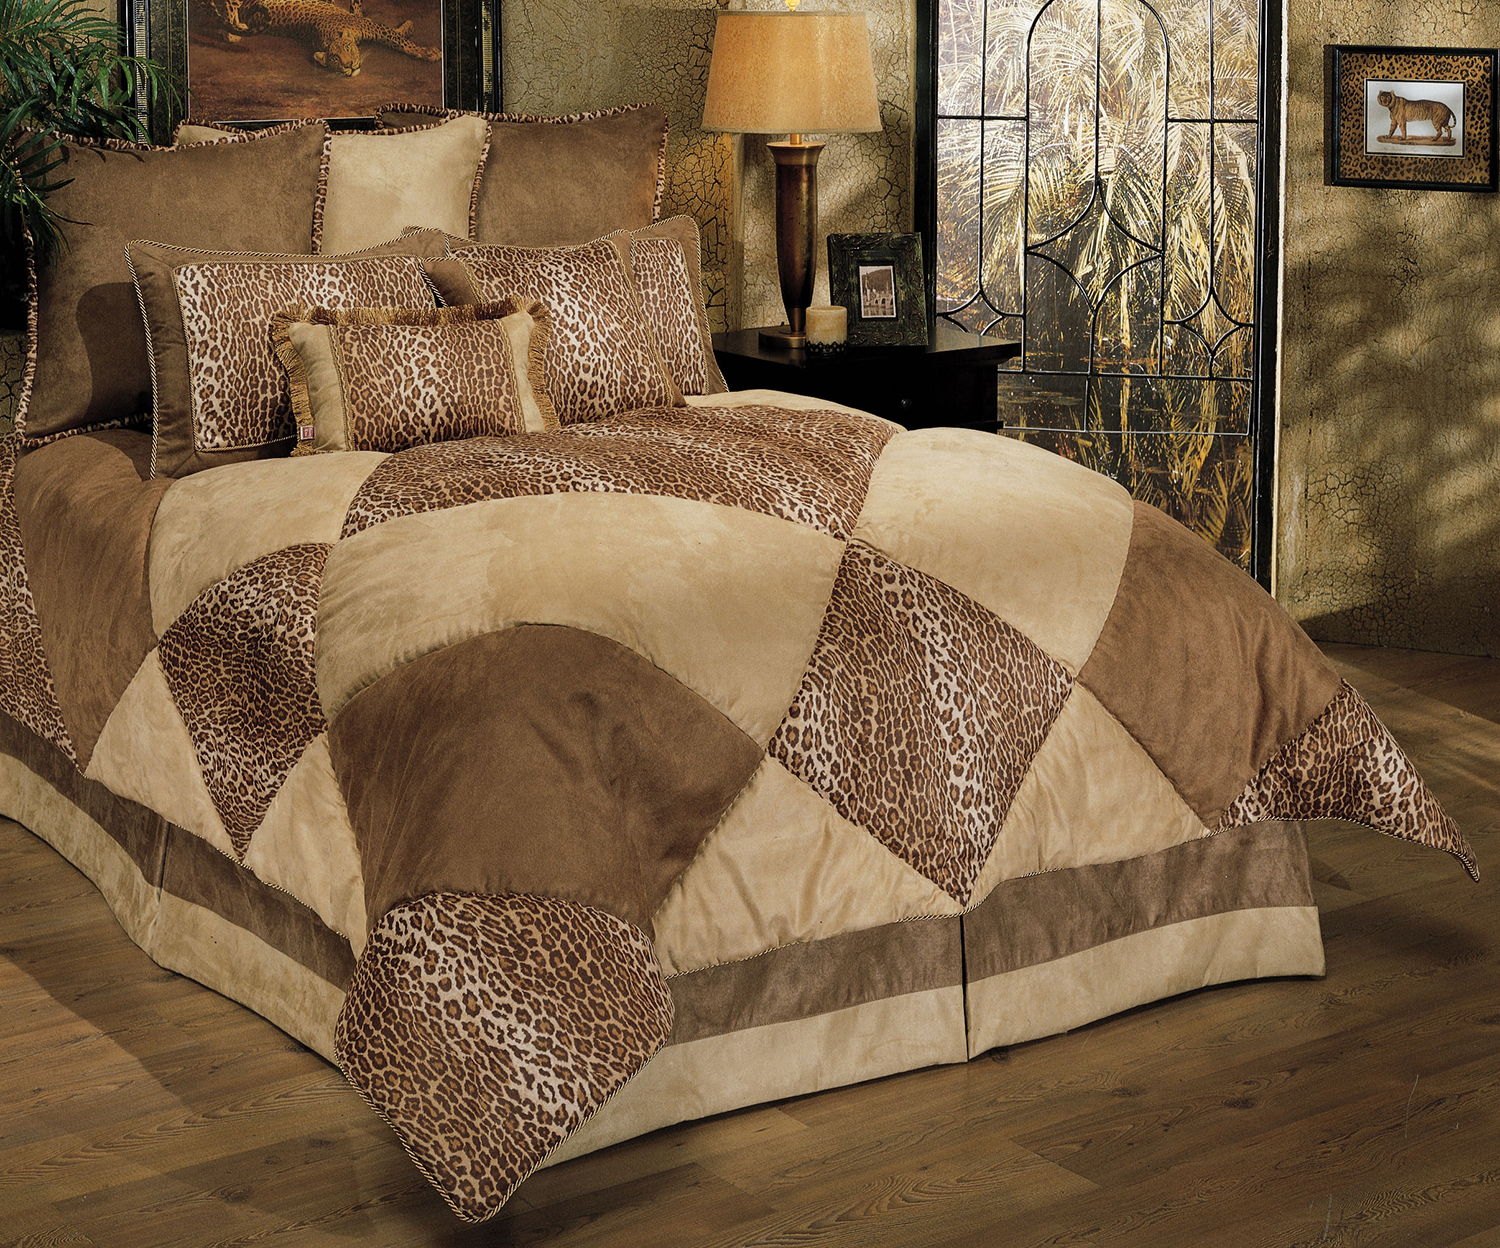 Safari Royale By Sherry Kline Beddingsuperstore Com